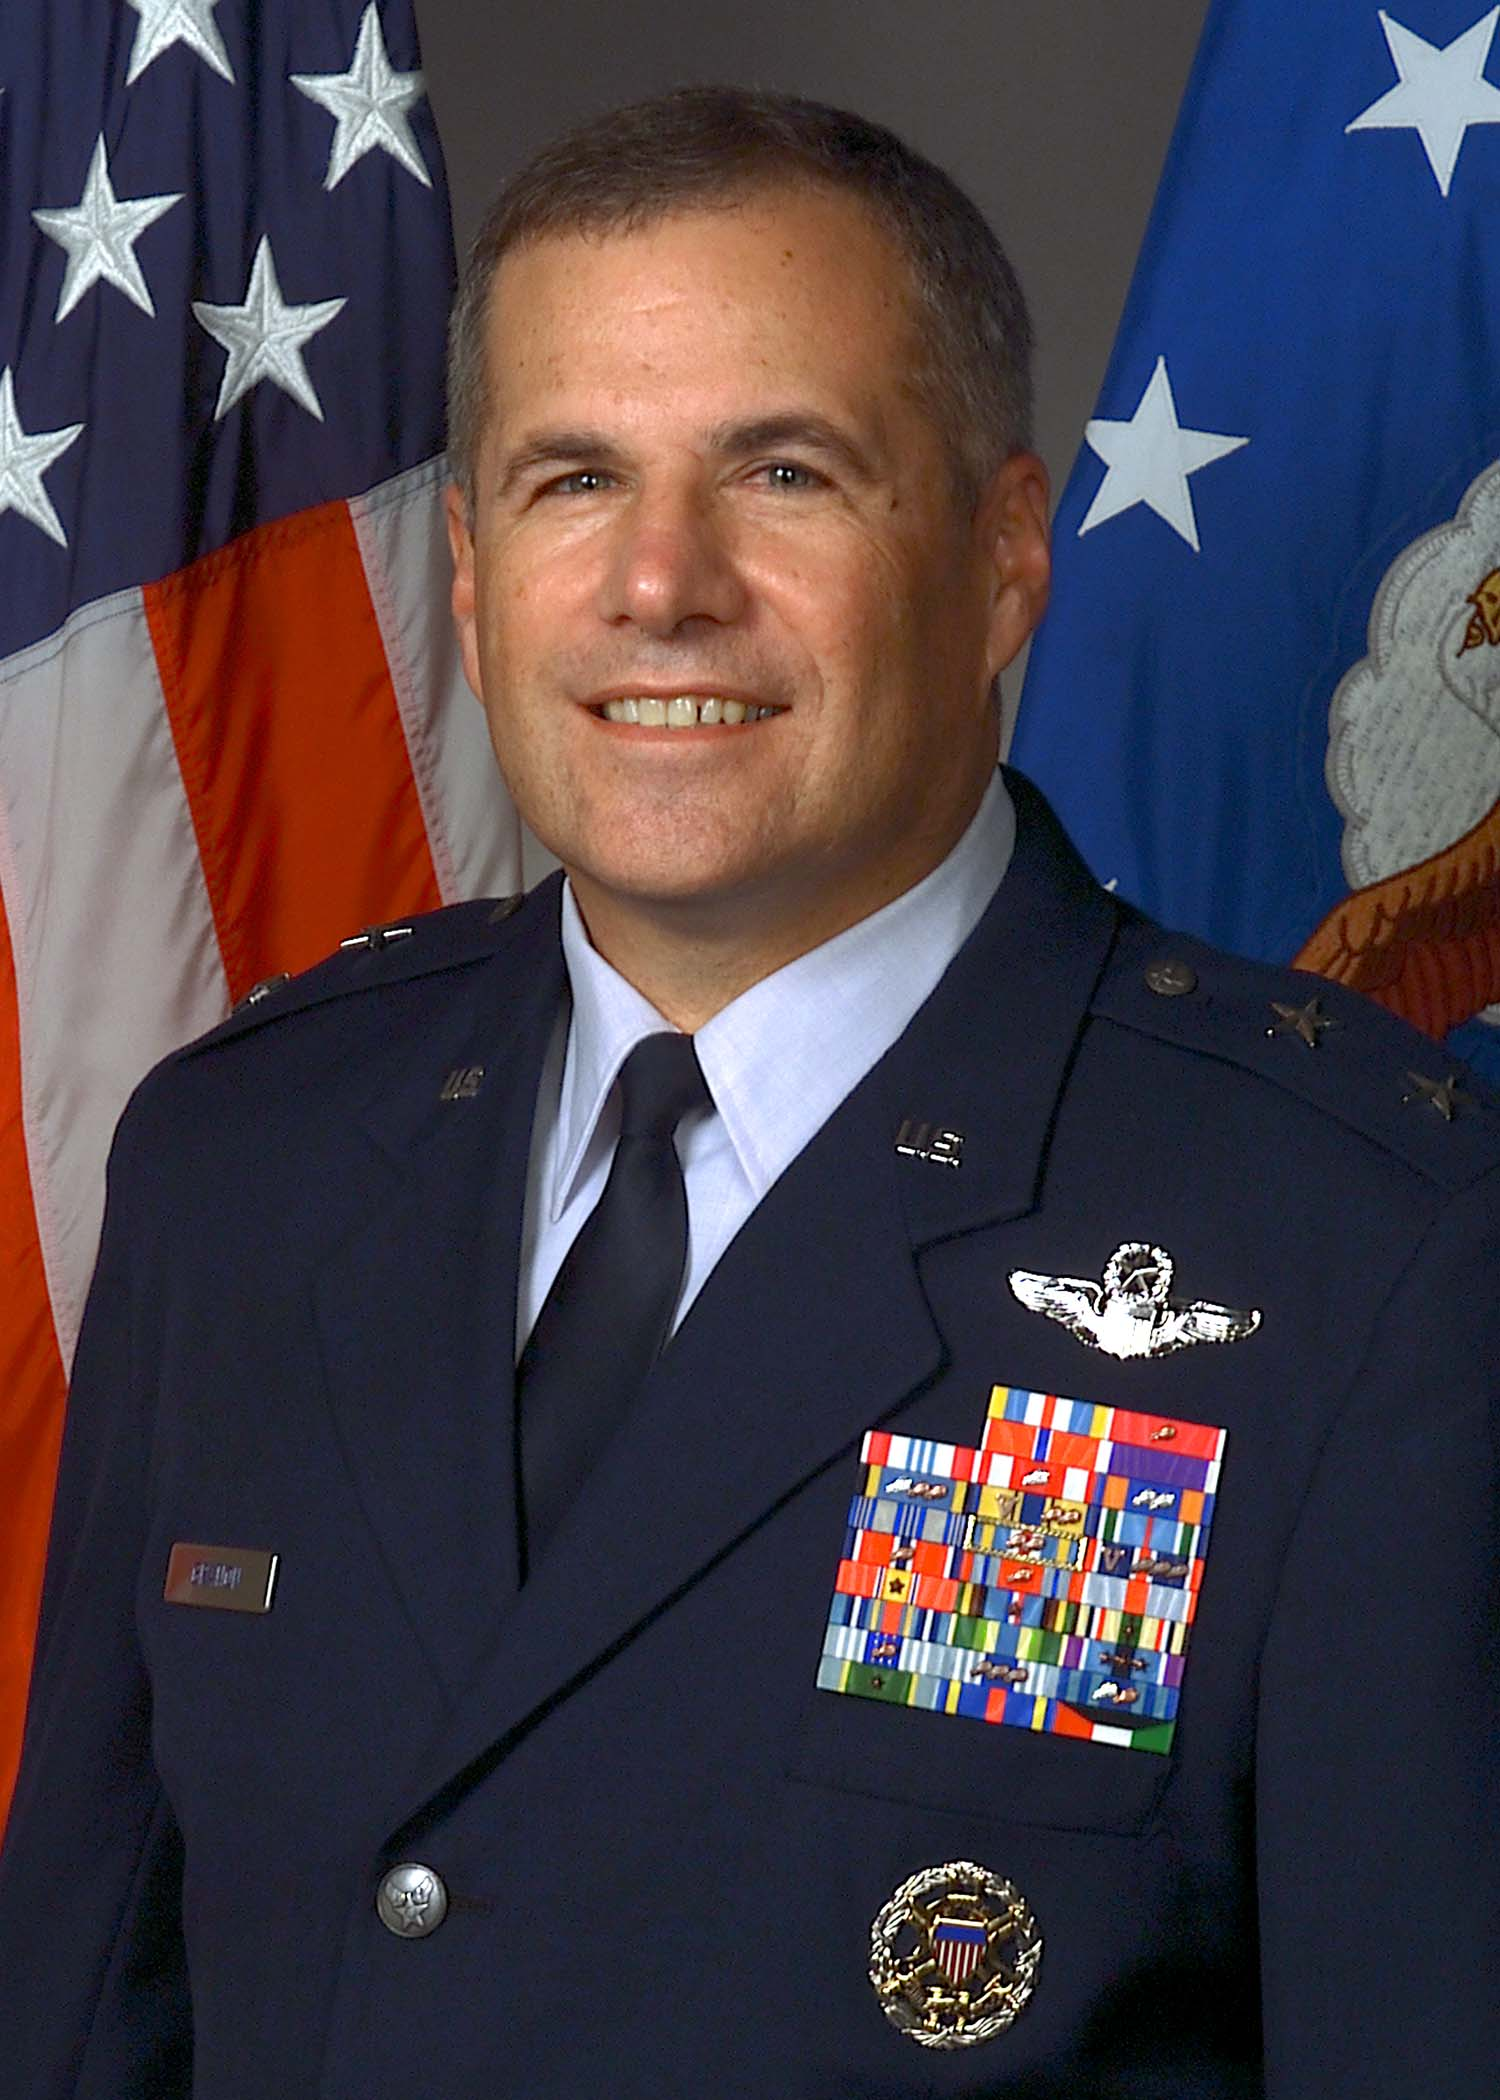 Maj. Gen. J. Scott Gration